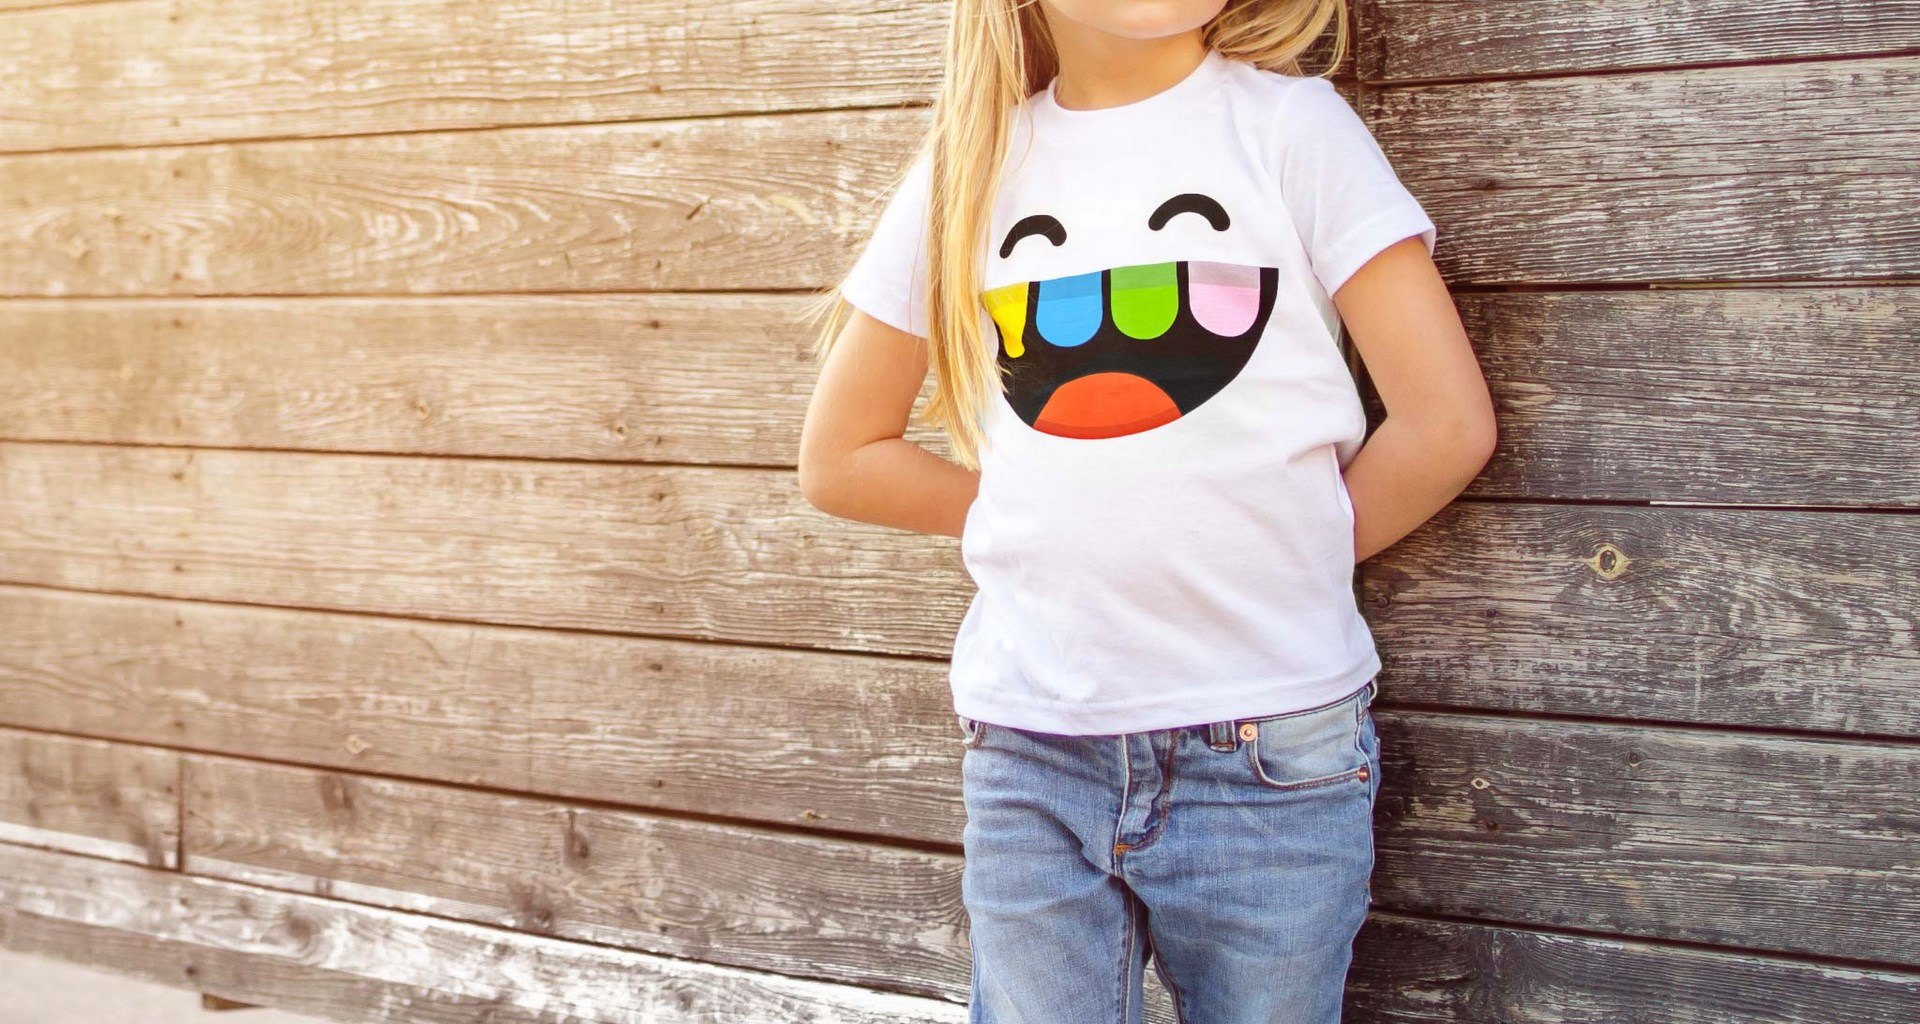 toca-tshirt_product-images_1 [640x480]